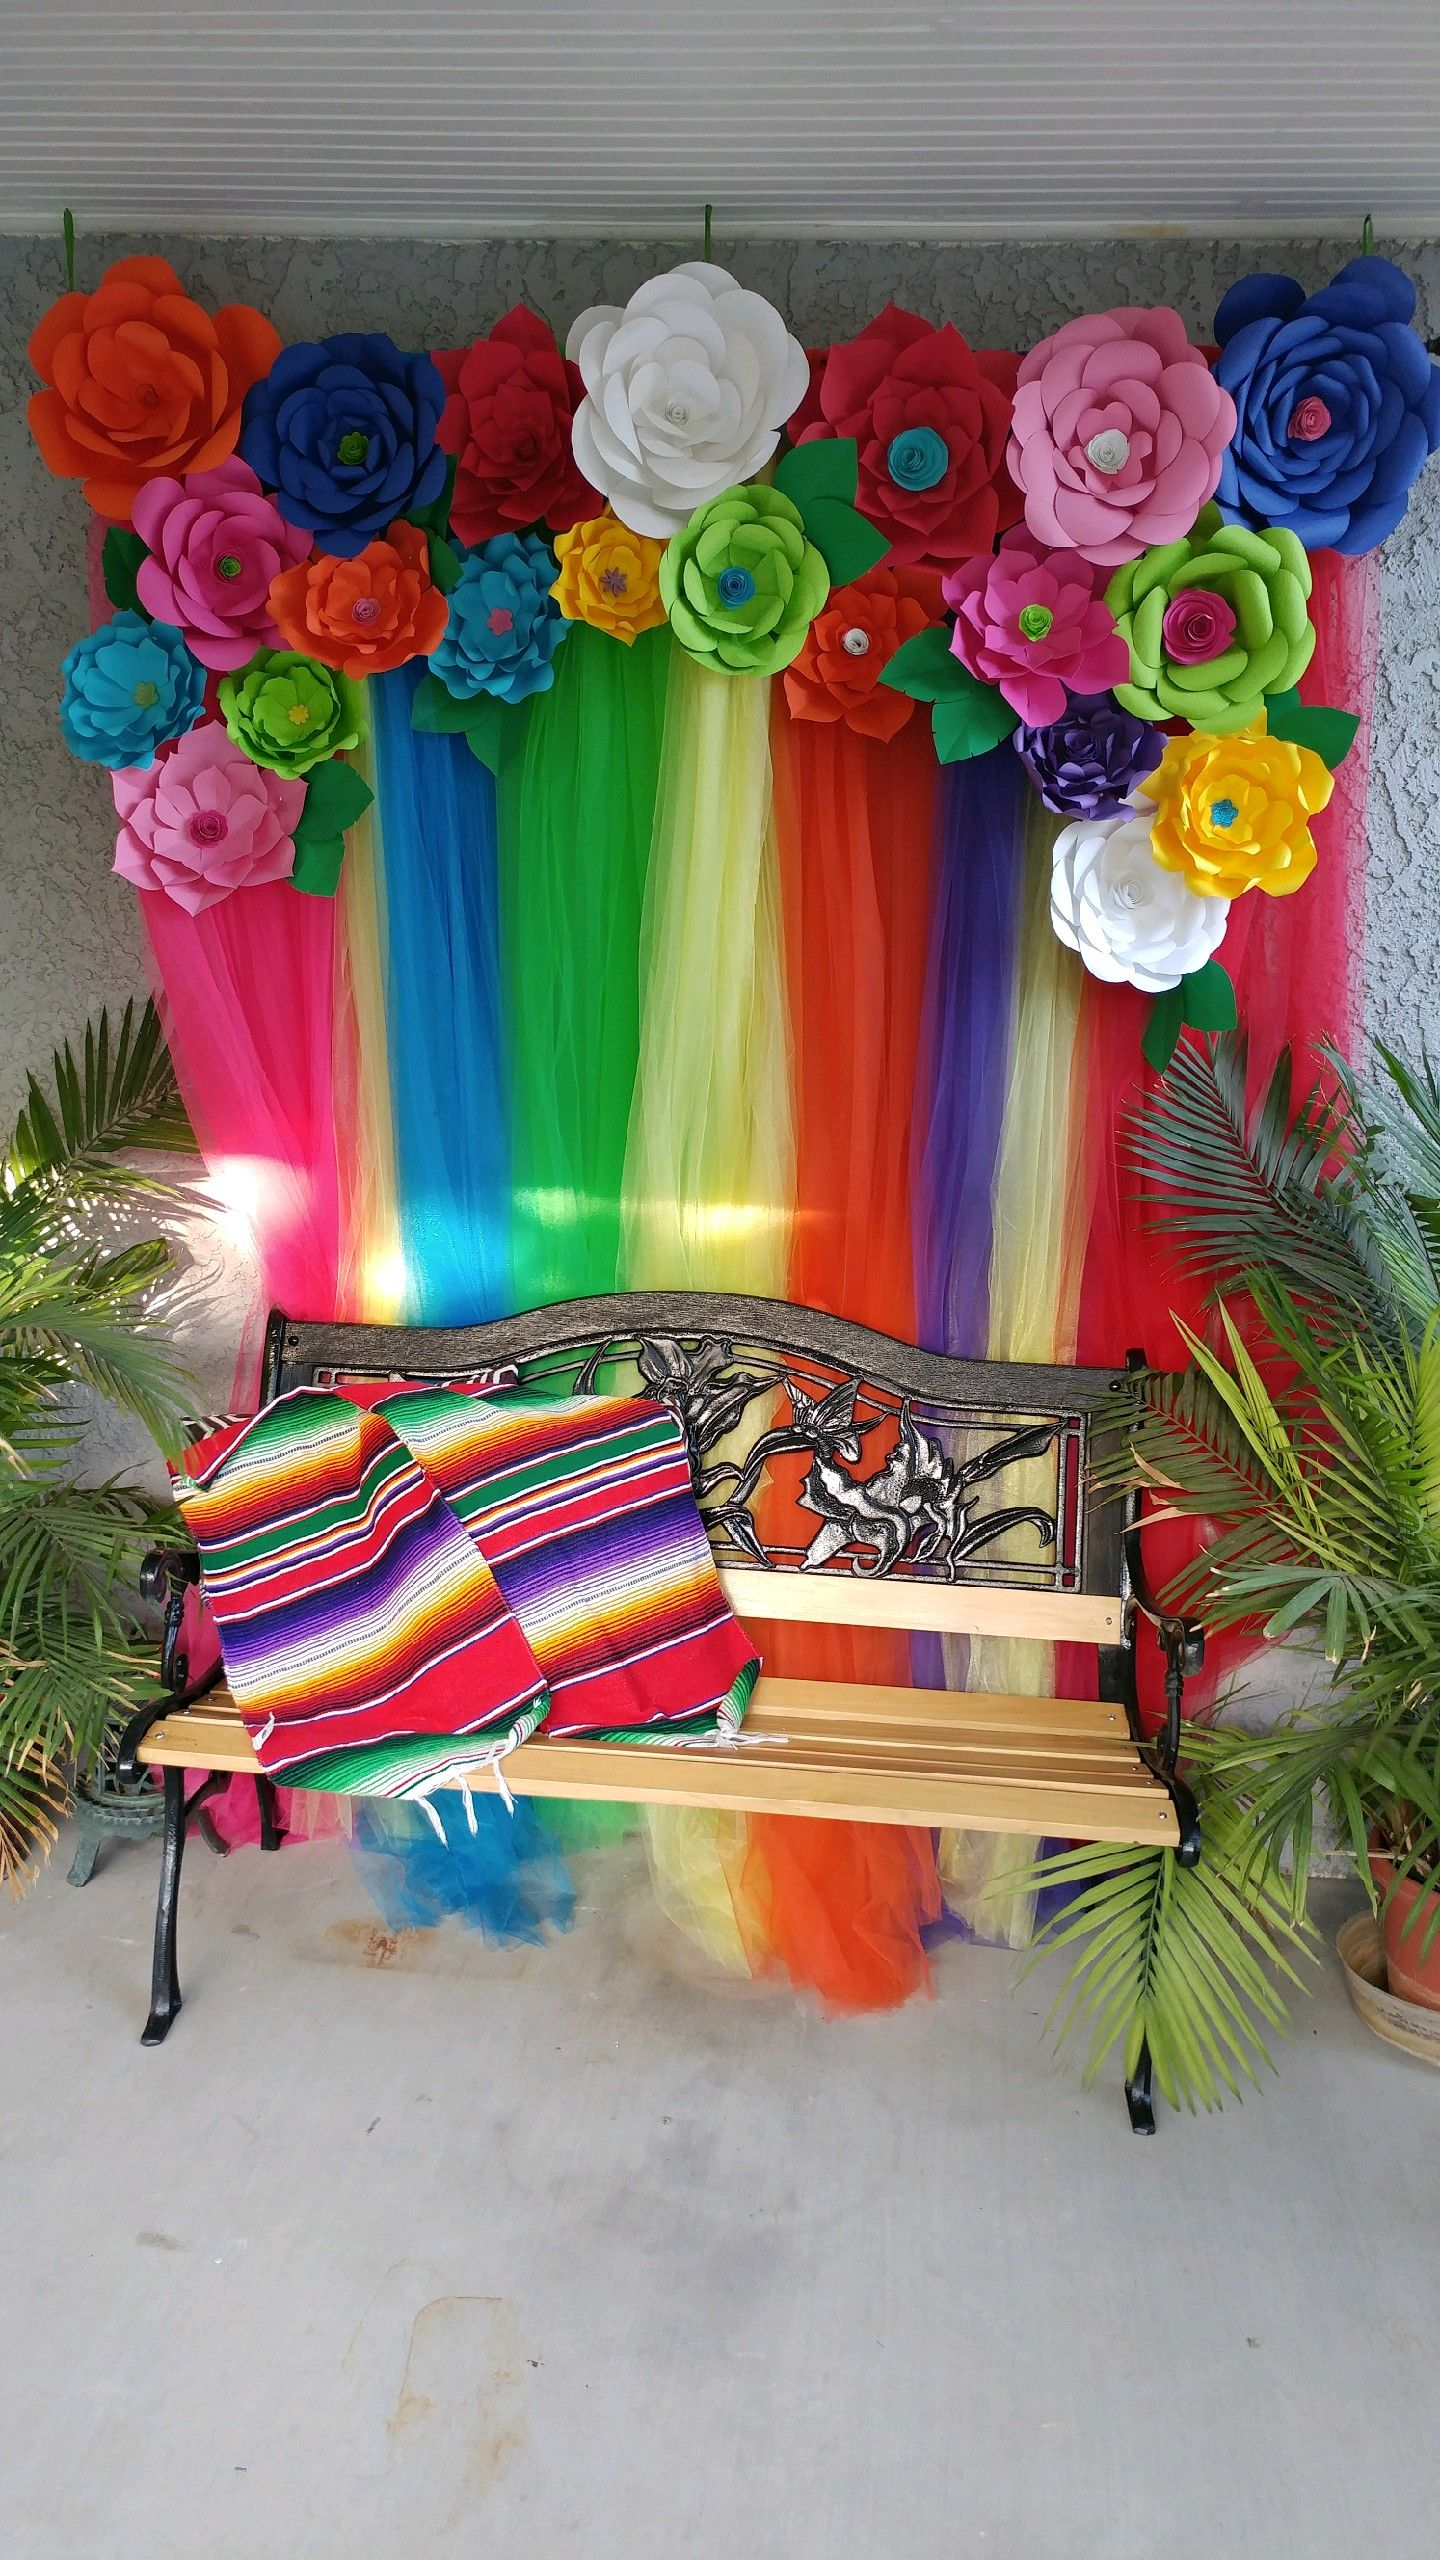 Fiesta photo booth sweet 16 pinterest fiesta for Decoracion kermes mexicana